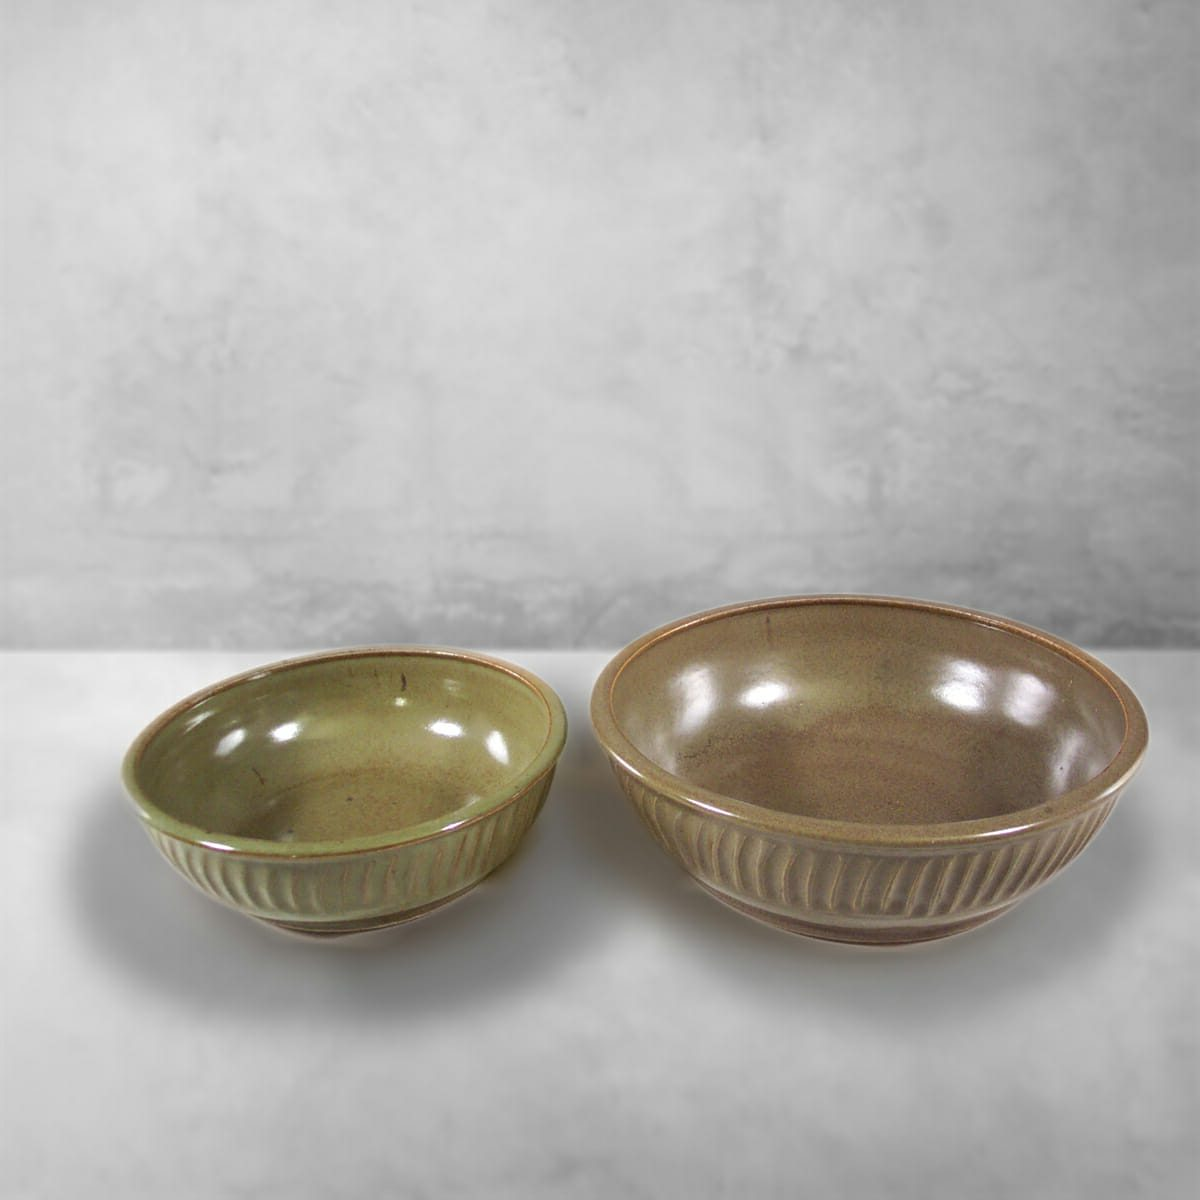 Low Bowls, small or regular sizes, Fluted Design in Green Glaze